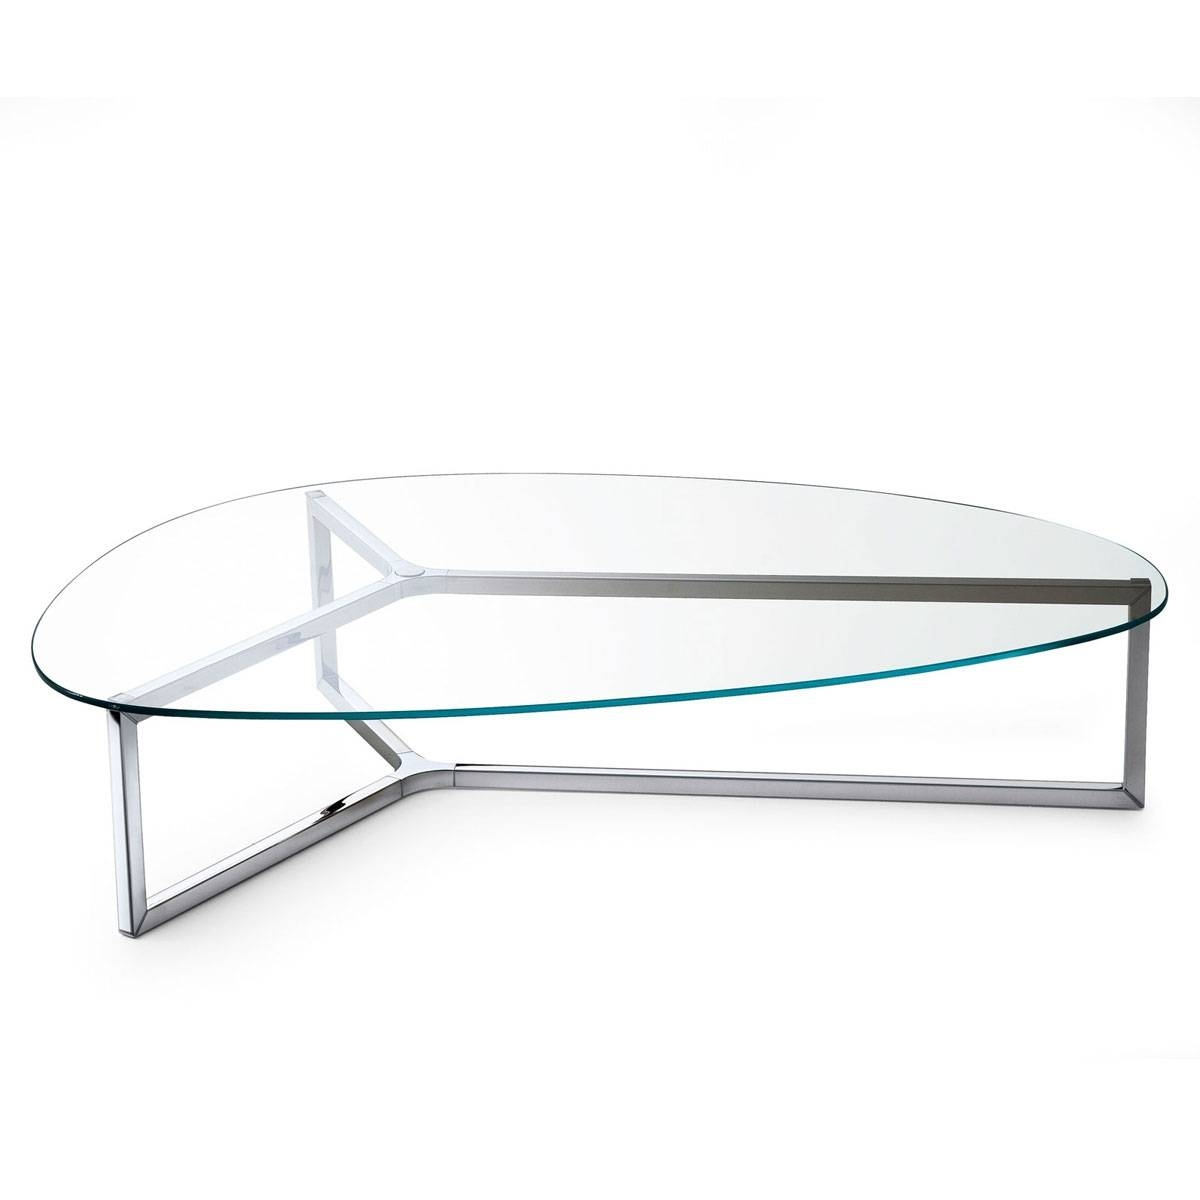 Coffee Table: Captivating Glass And Metal Coffee Table Design regarding Unusual Glass Coffee Tables (Image 5 of 30)